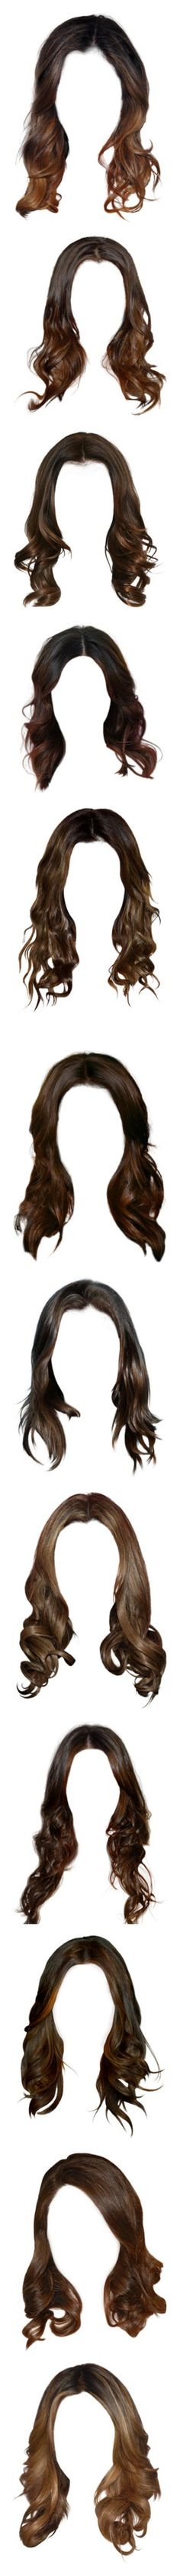 """""""Hayley Marshall Hairstyles"""" by demiwitch-of-mischief ❤ liked on Polyvore featuring hair, doll hair, hairstyles, doll parts, dolls, beauty products, haircare, hair styling tools, wigs and brunette"""